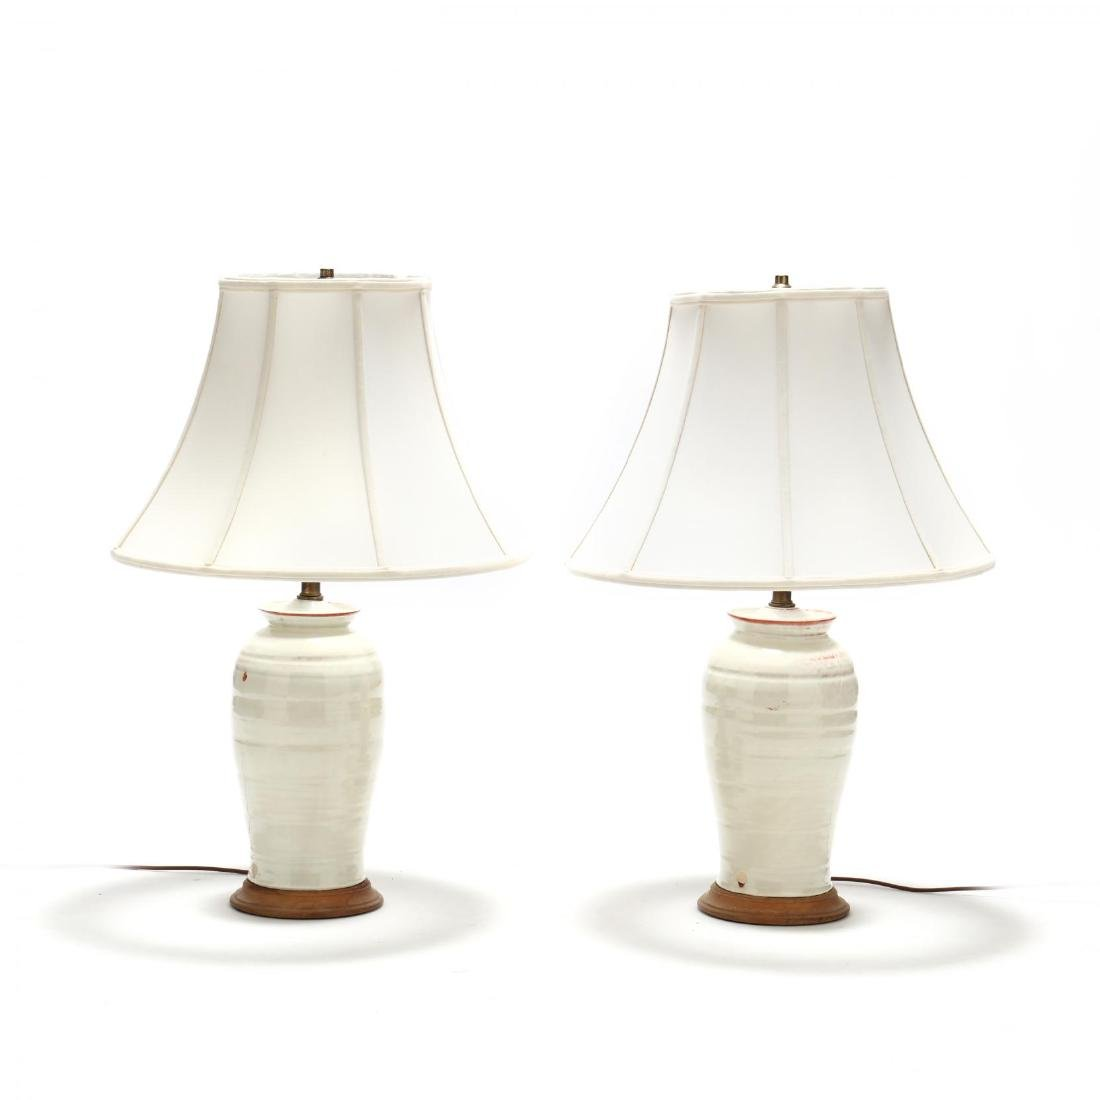 Pair of Seagrove Pottery Table Lamps